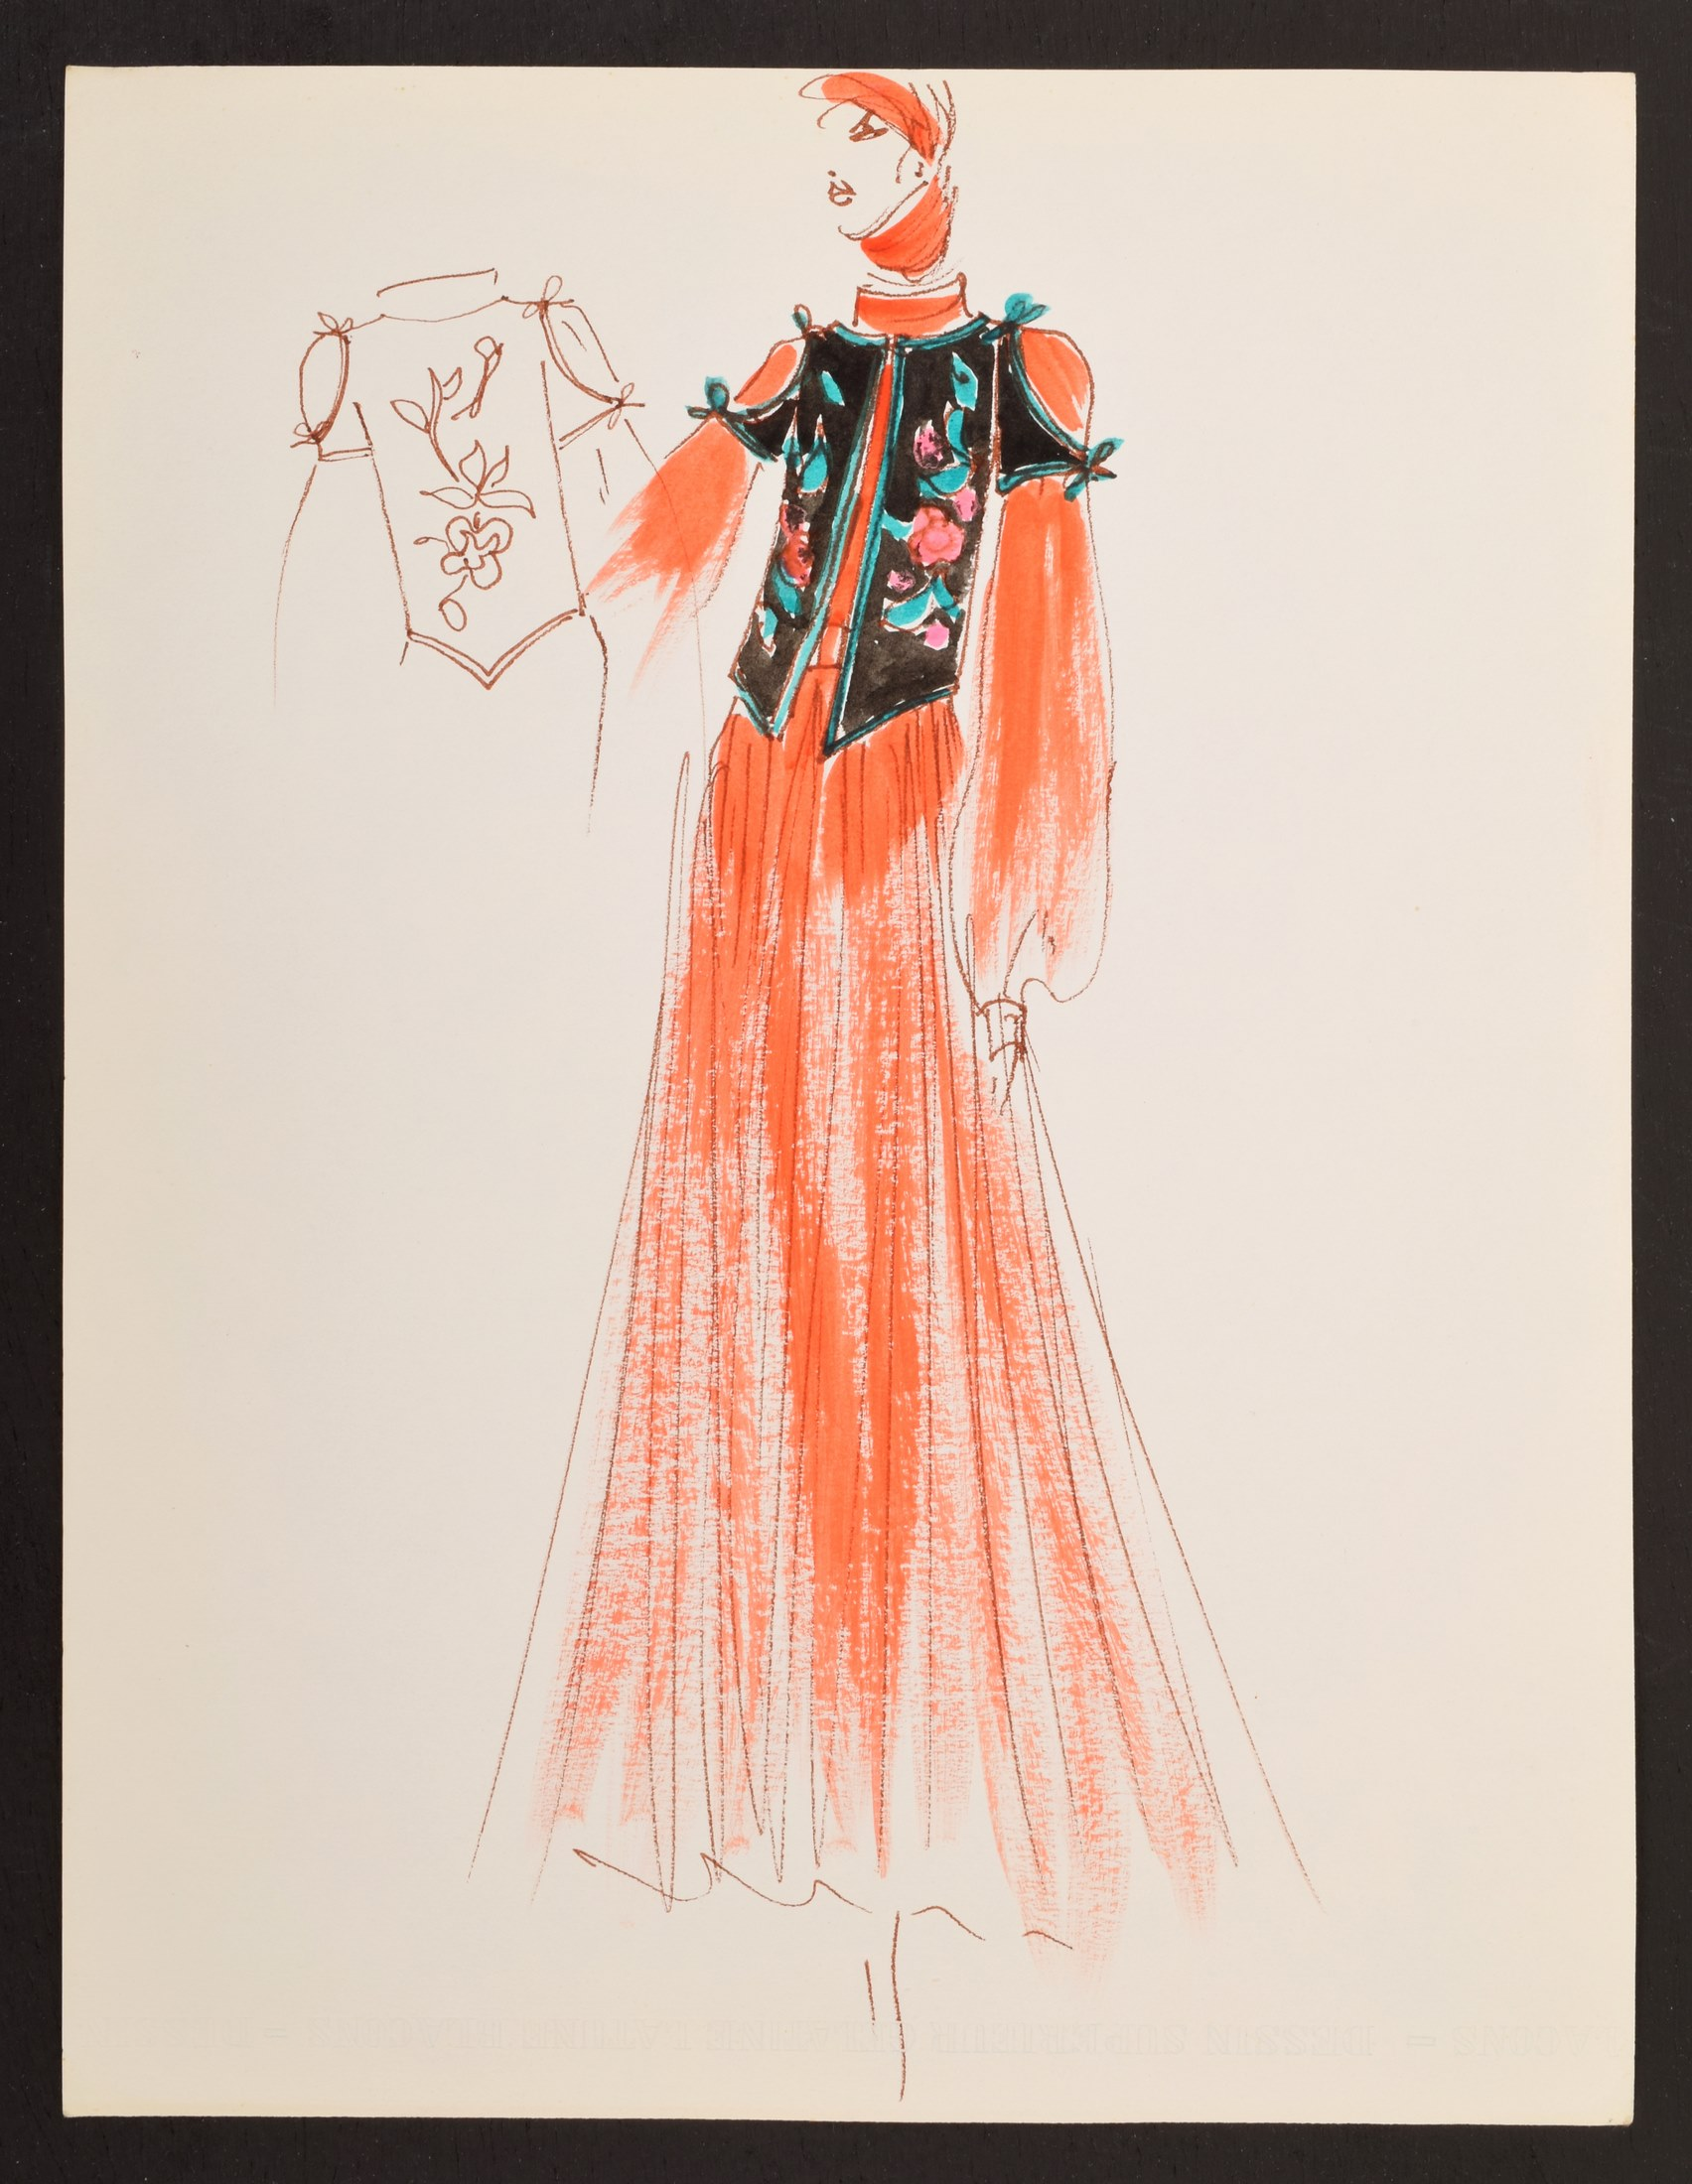 1960s hand-colored original fashion drawing created by Karl Lagerfeld (German, 1933-2019) while engaged by House of Tiziani, Rome. Estimate: $500-$1,500